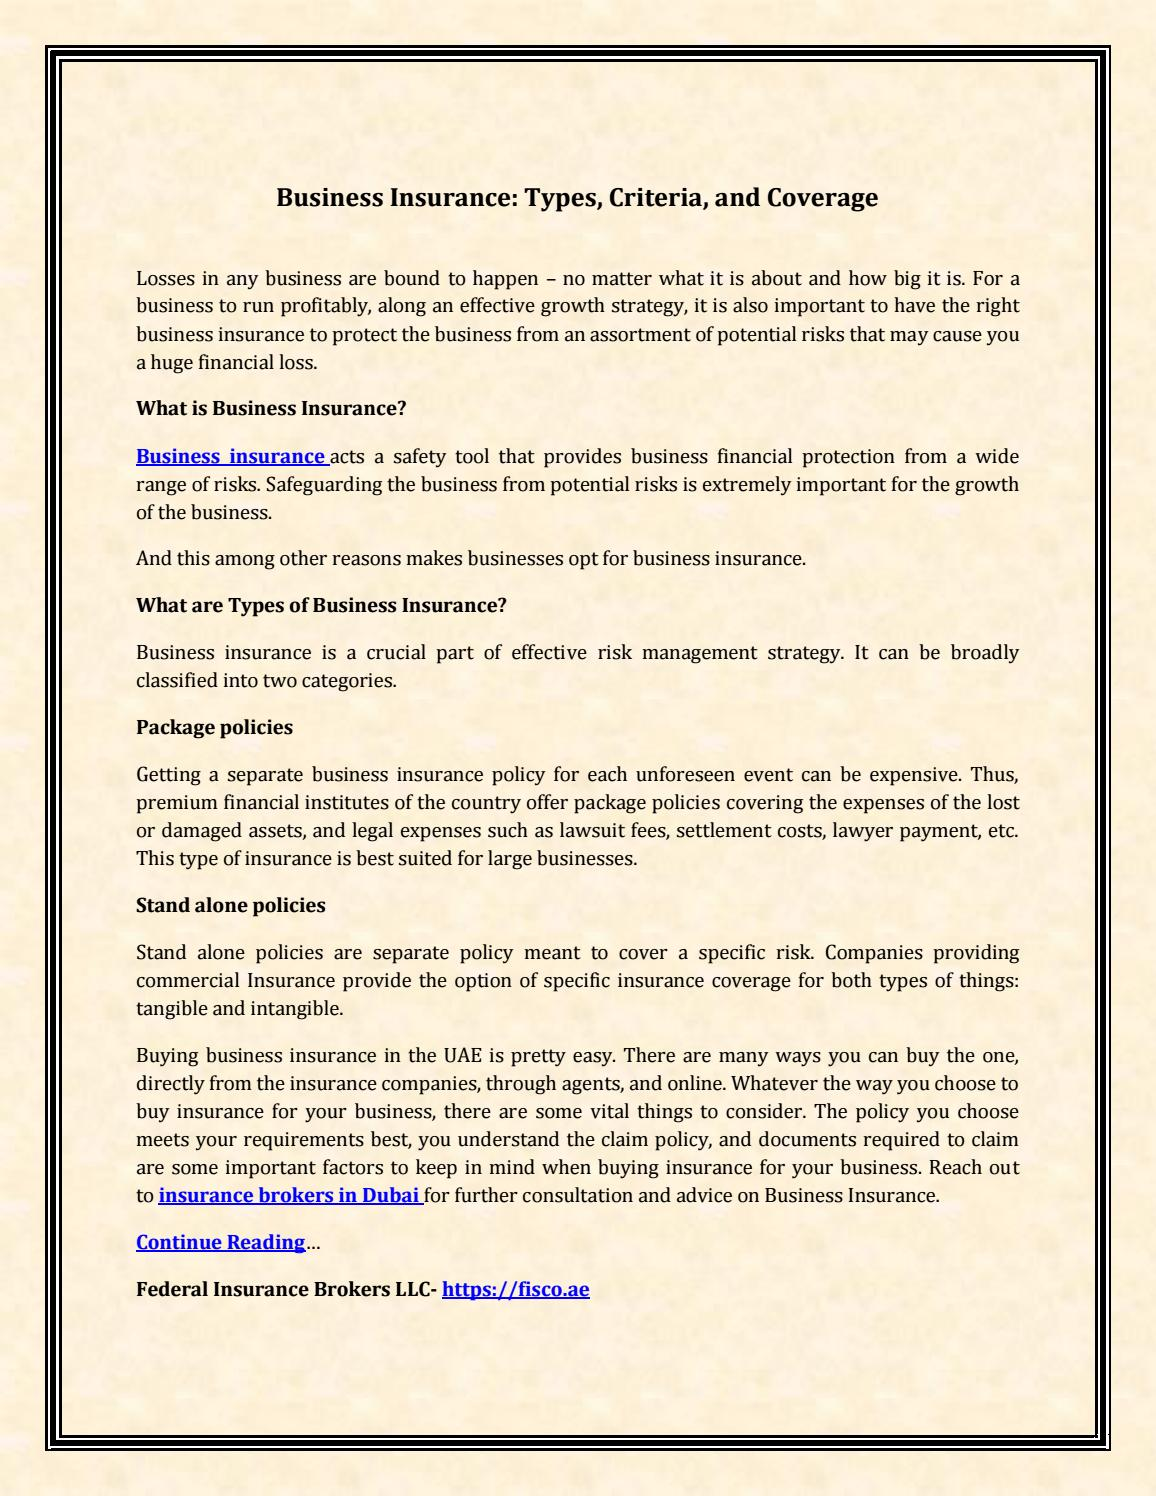 Business Insurance Types Criteria And Coverage By Federal Insurance Brokers Llc Issuu